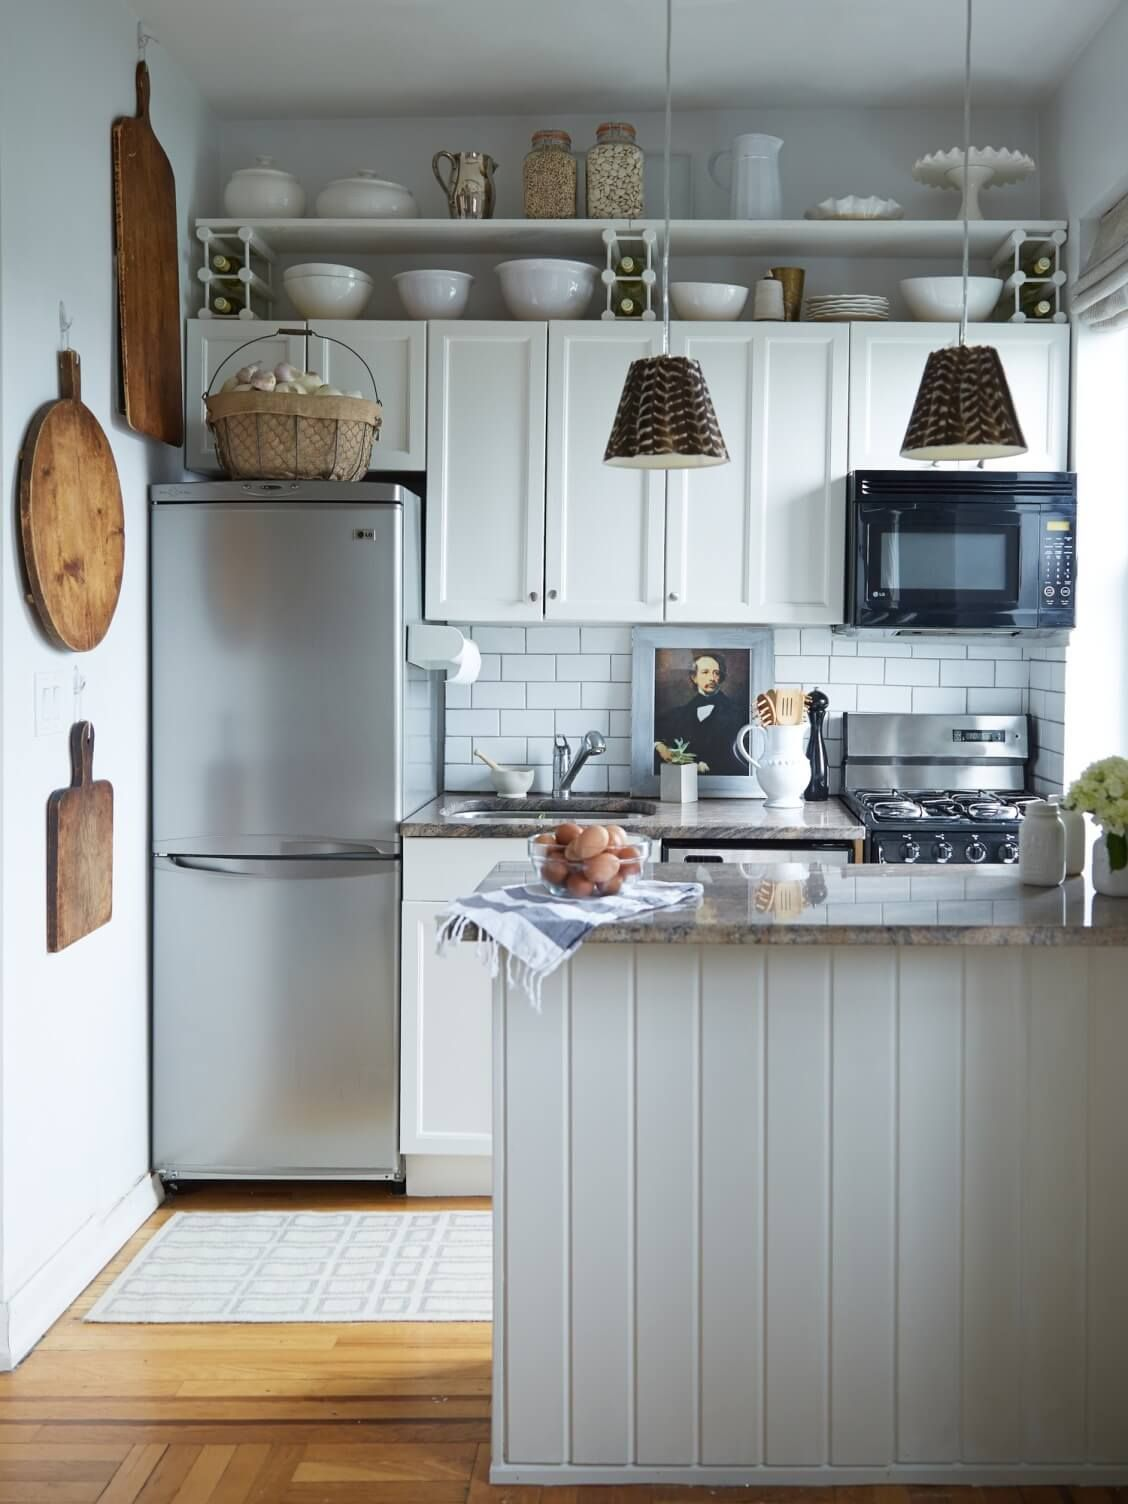 30 Nifty Small Kitchen Design and Decor Ideas to Transform Your ...